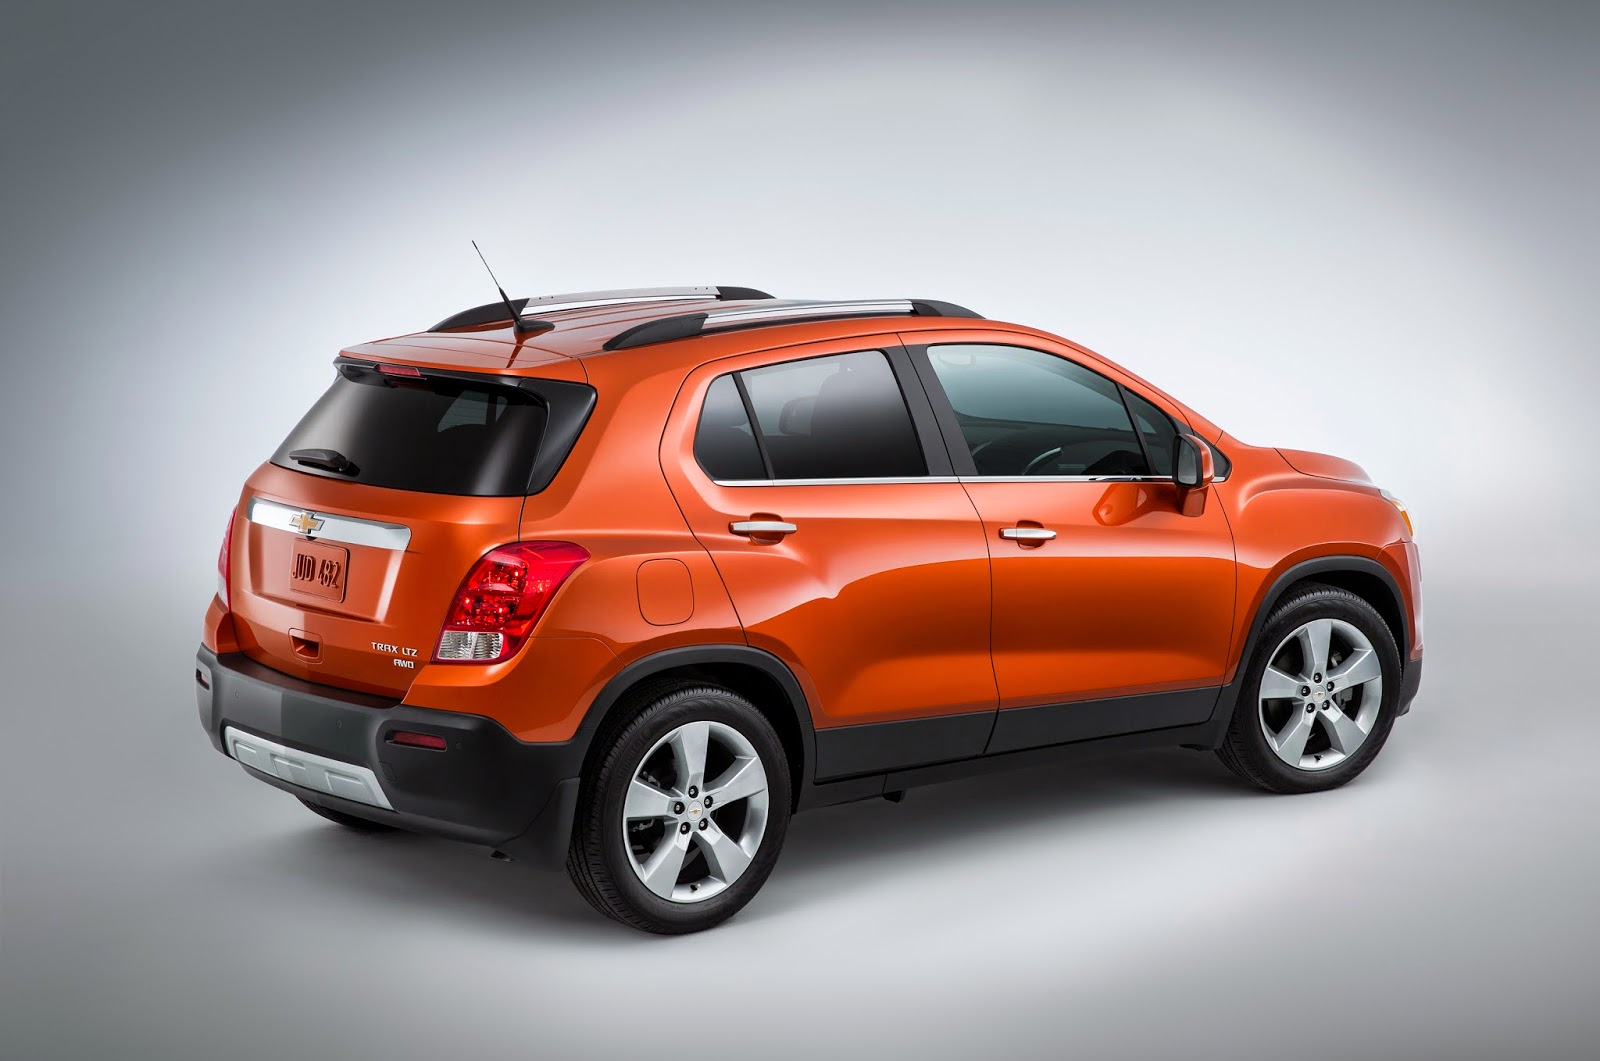 2015 Chevrolet Trax Small SUV Announced